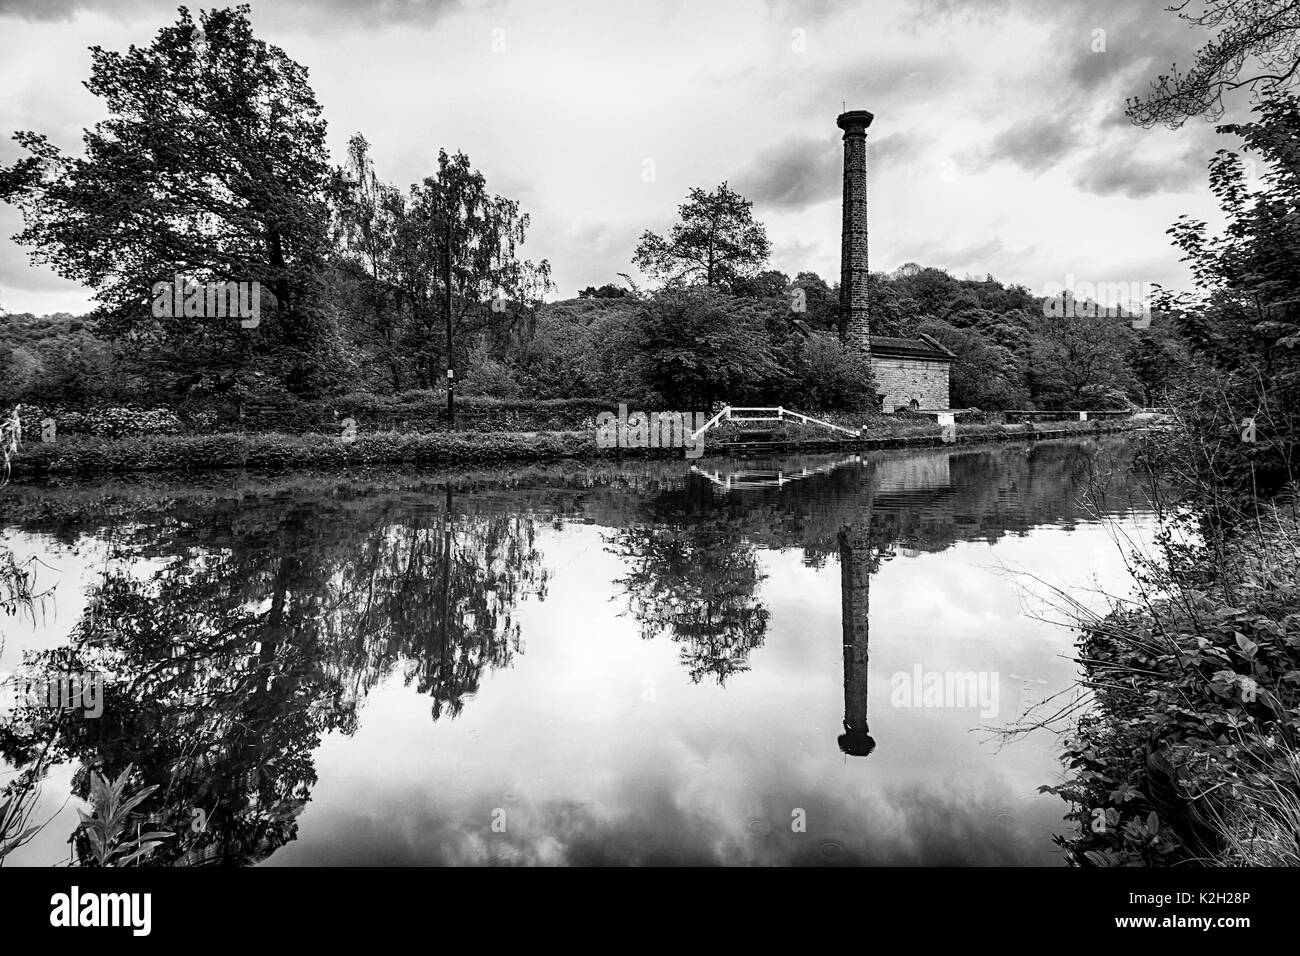 Leawood Pumphouse at Cromford Canal in Derbyshire on the edge of the Peak District. This is a  black and white image capturing a beautiful reflection. - Stock Image